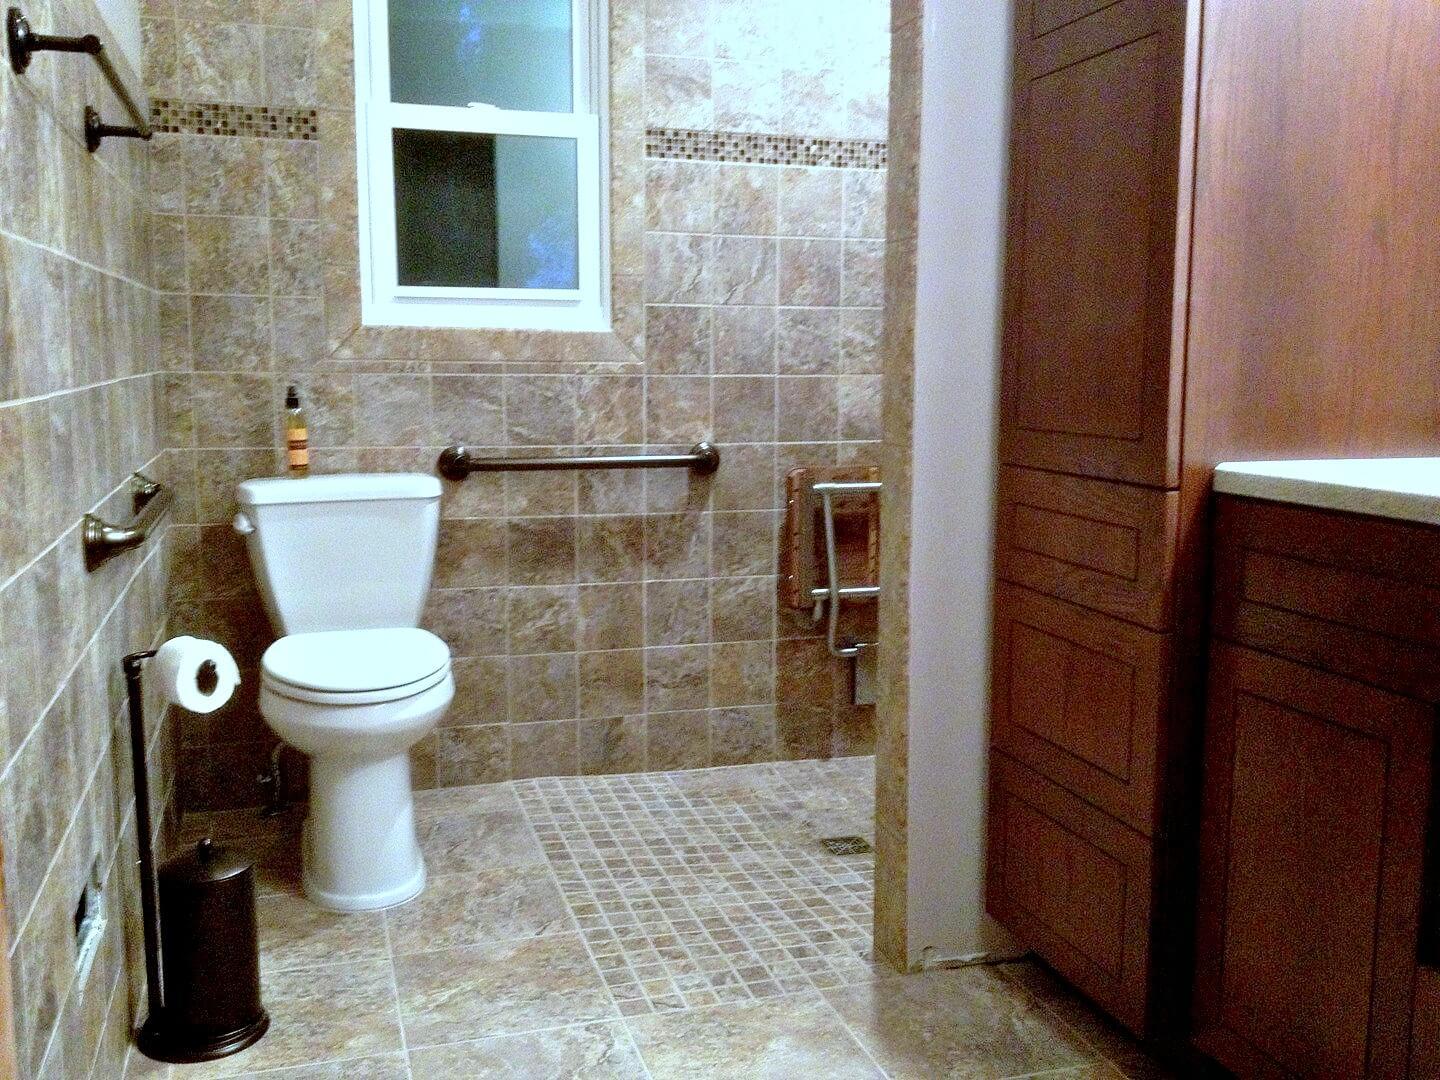 Kitchen And Bath Design Quad Cities Muscatine Bathroom Remodeling Contractor Moose Ridge Construction